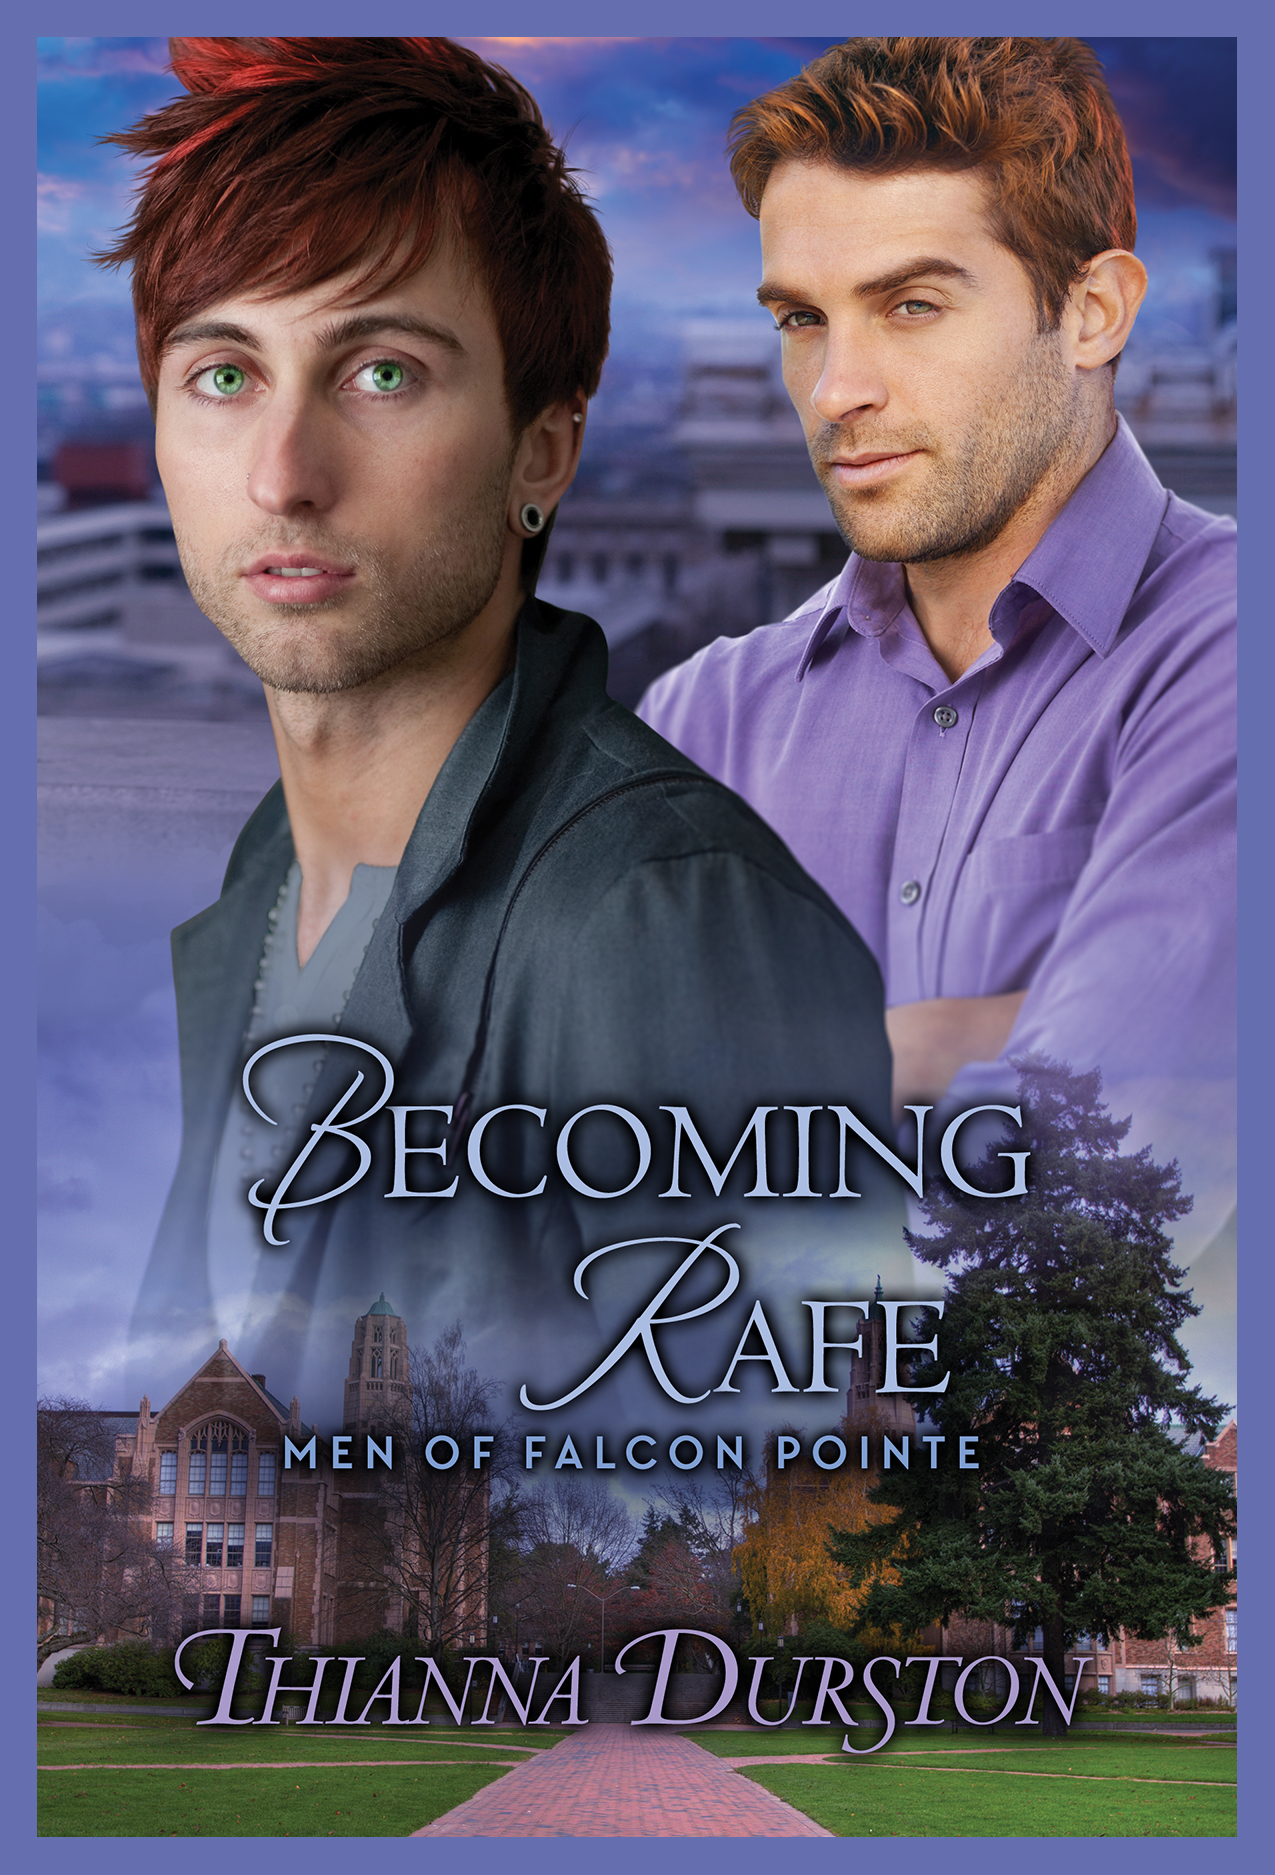 BecomingRafe_postcard_front_DSP